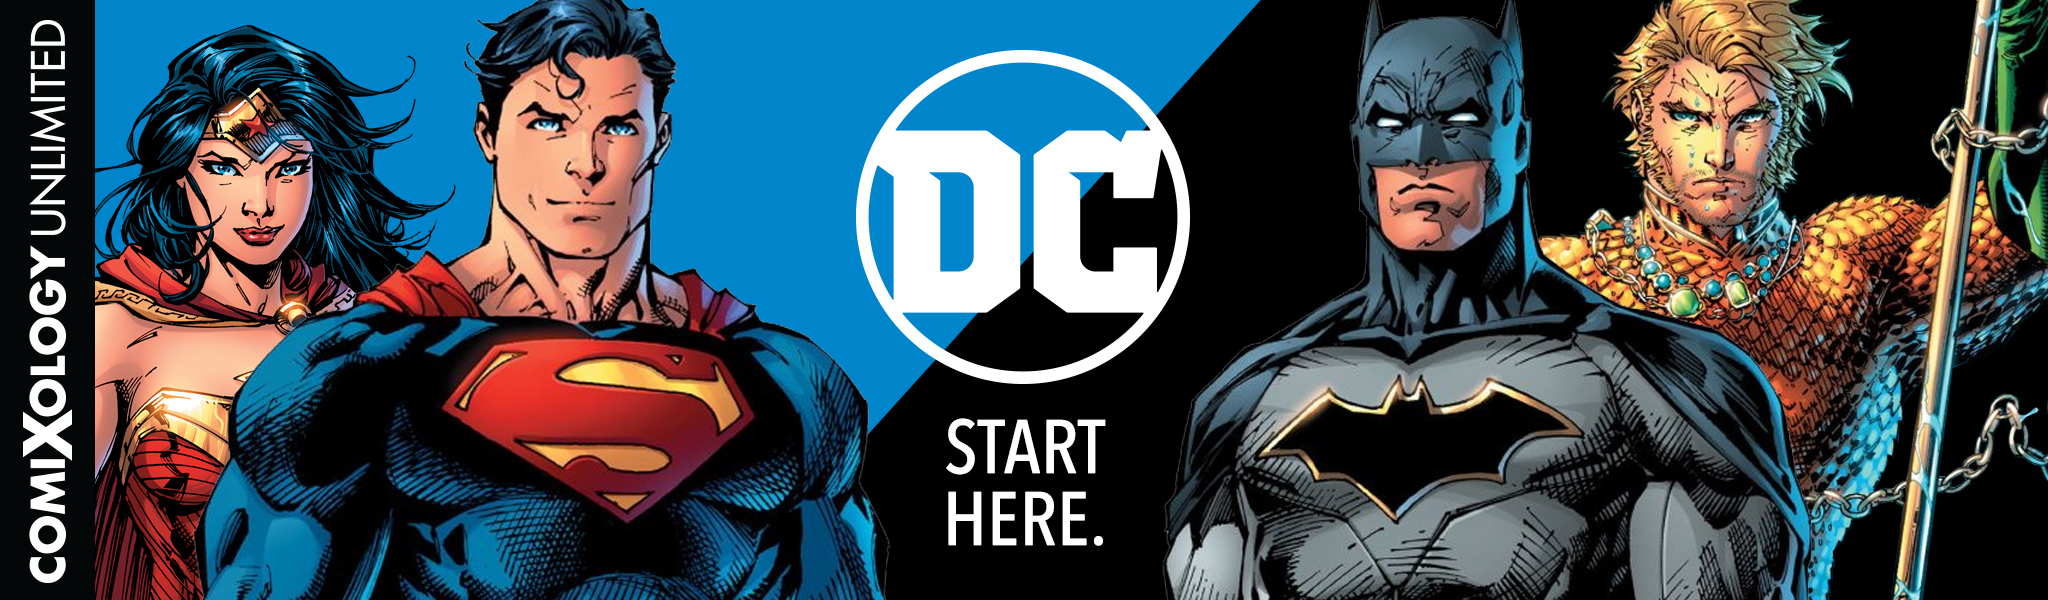 Press release: DC joins comiXology Unlimited, Kindle